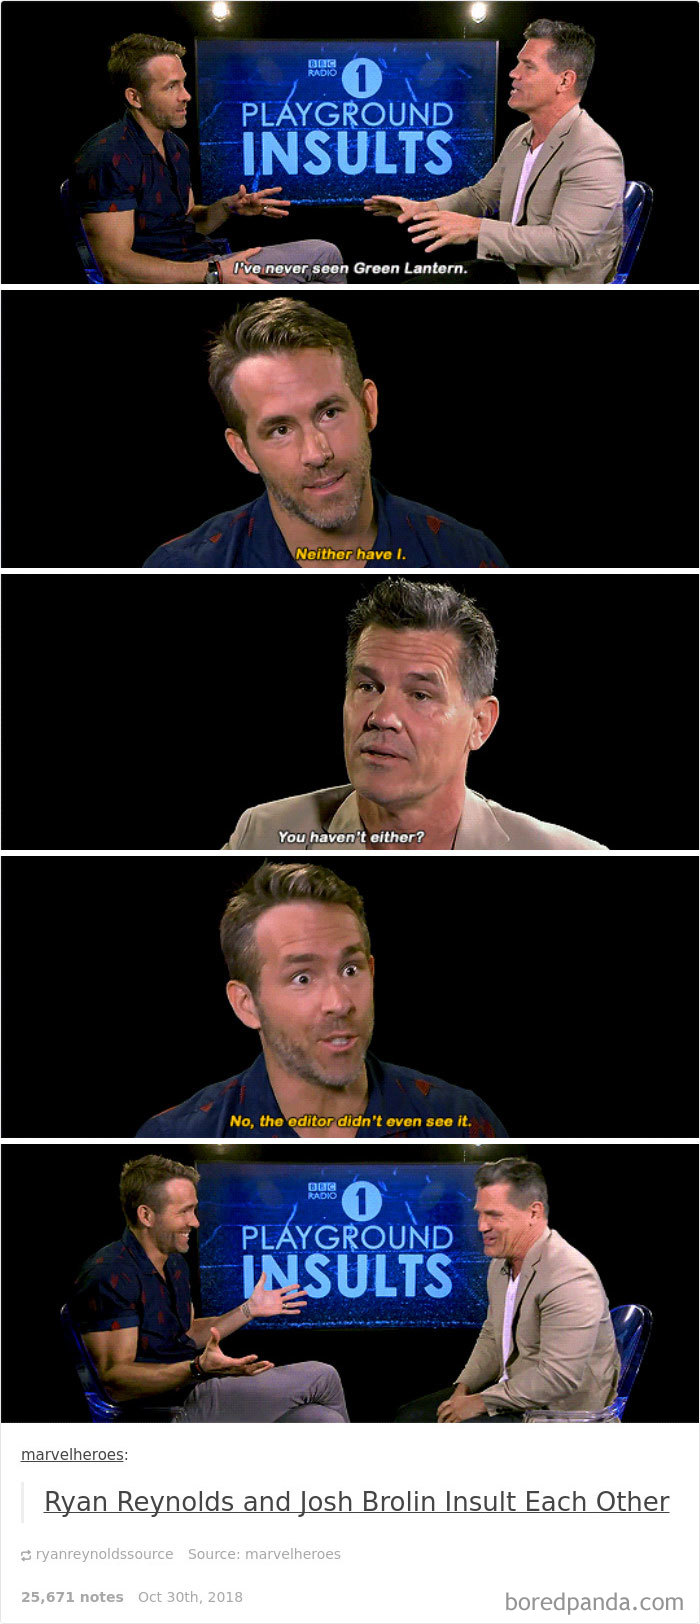 His Love/Hate Relationship With Josh Brolin